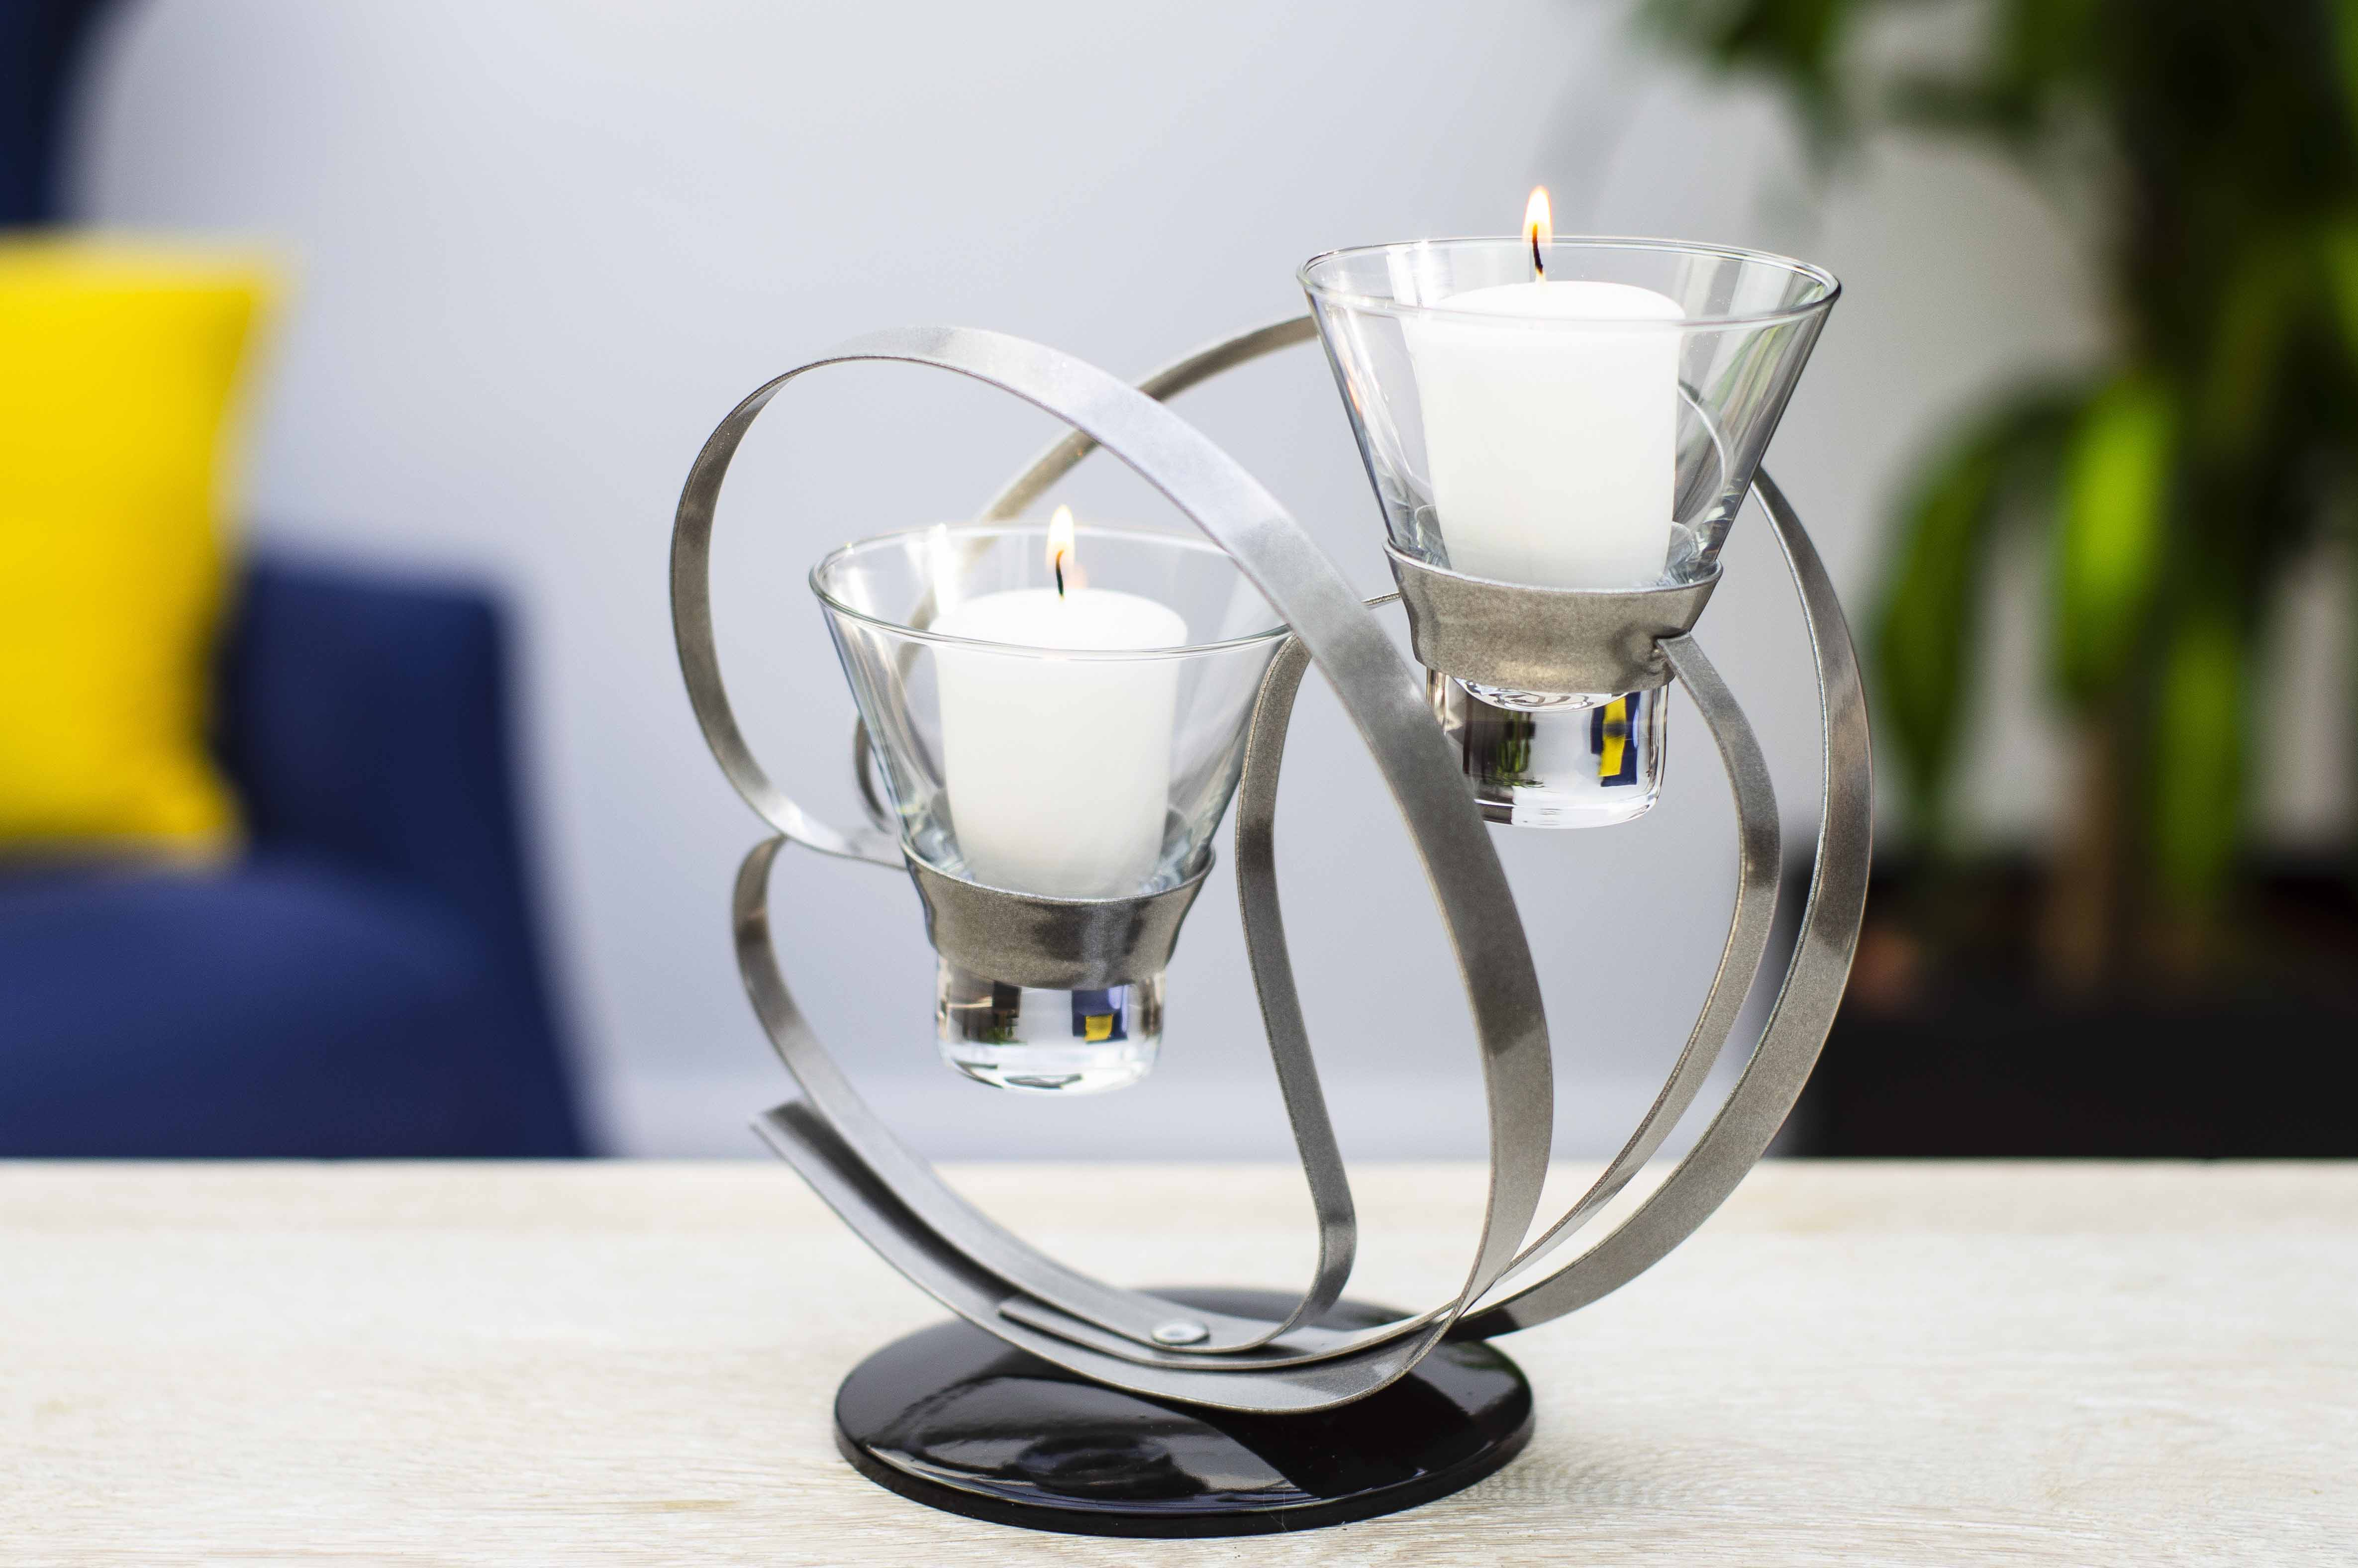 Candle Tea Light Holder Candlestick Black & Silver Glass & Metal set of 10 (4 single, 3 double, 3 lamp)